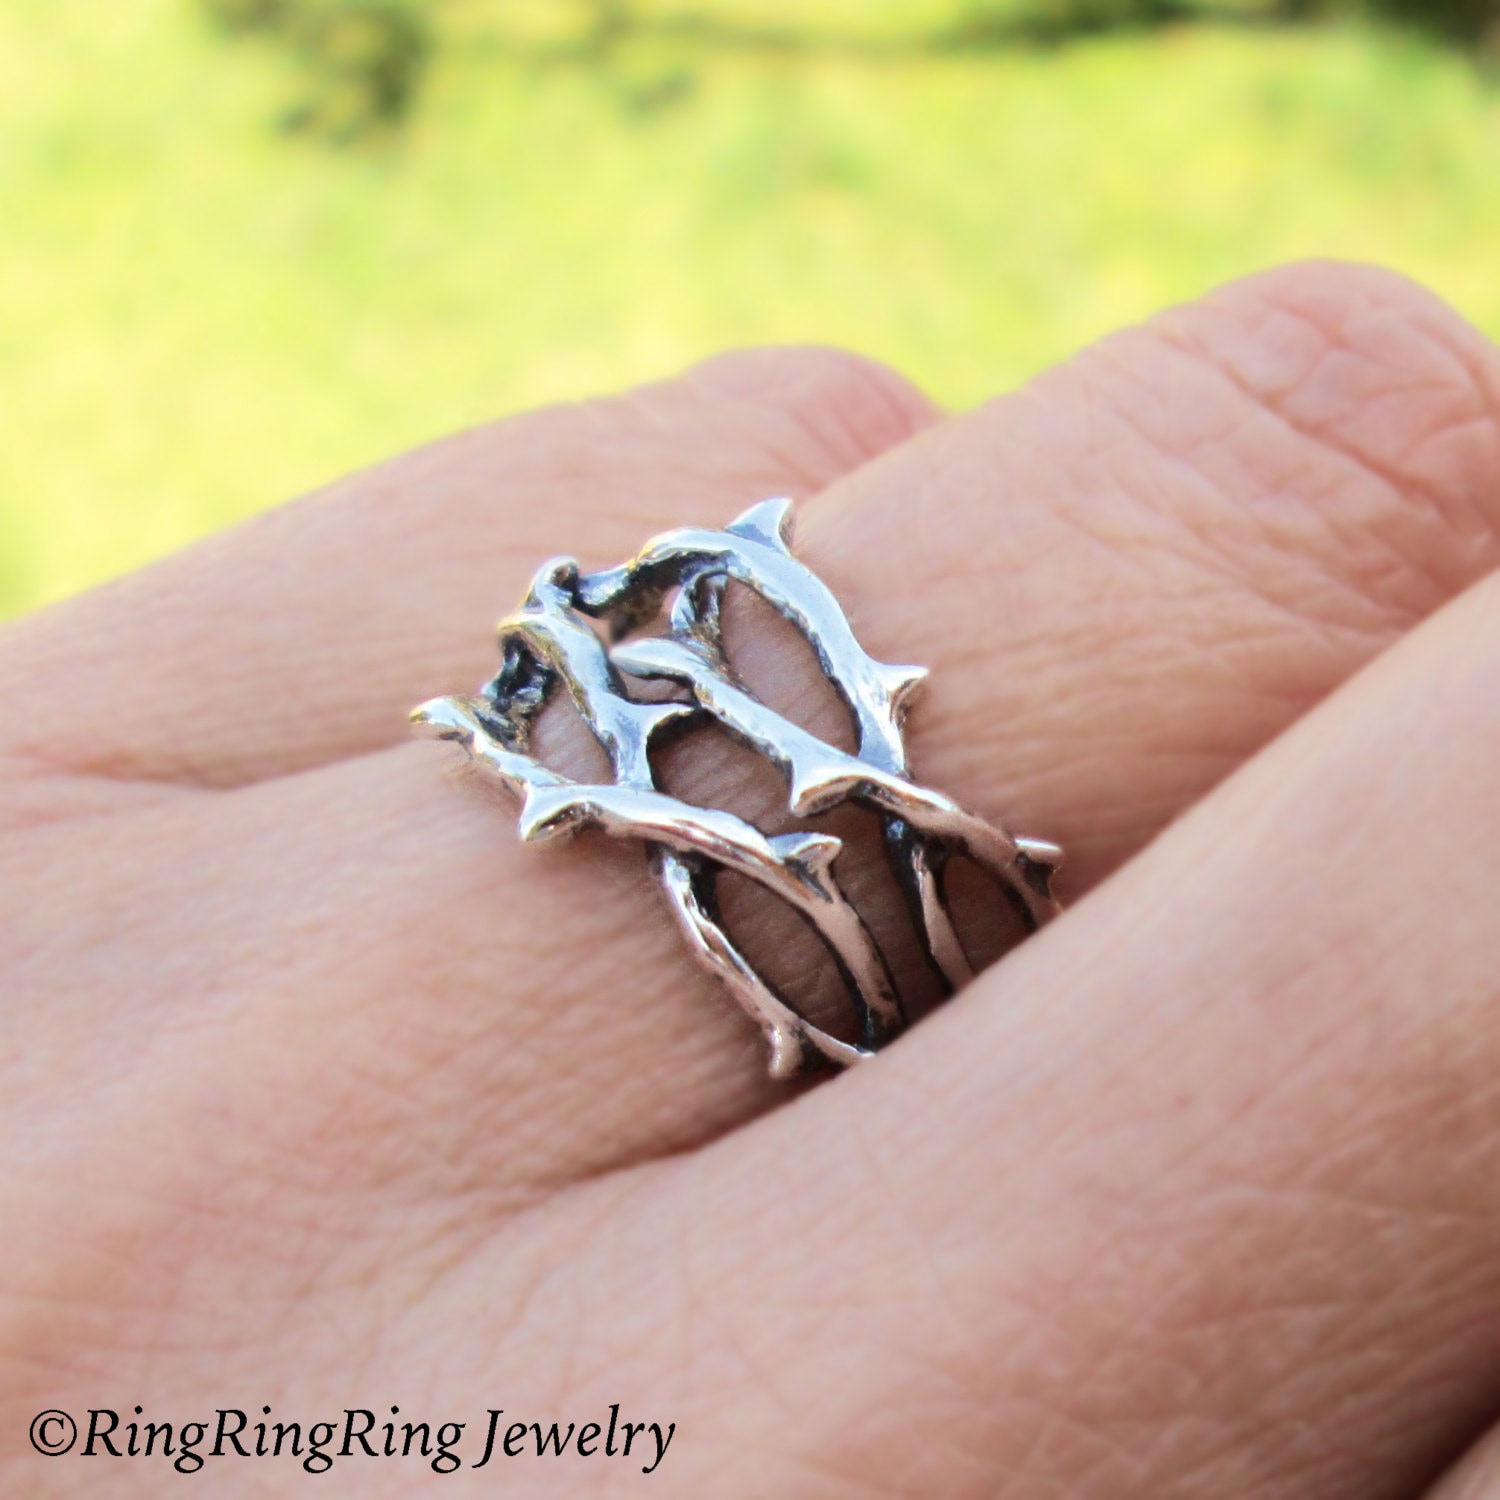 to wear - Ring tree jewelry video